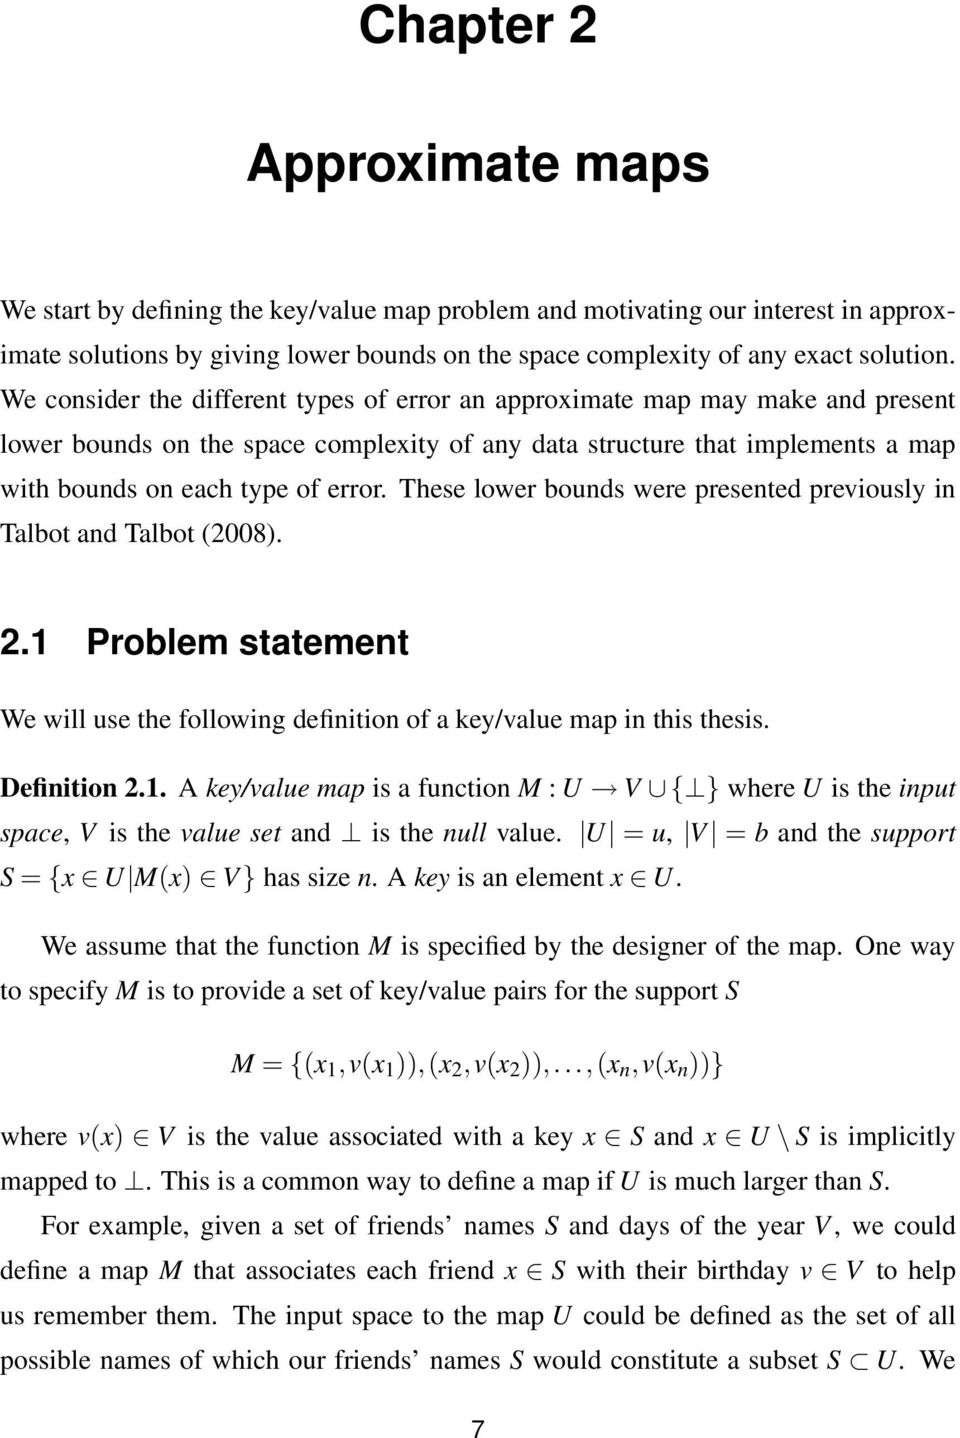 These lower bounds were presented previously in Talbot and Talbot (2008). 2.1 Problem statement We will use the following definition of a key/value map in this thesis. Definition 2.1. A key/value map is a function M : U V { } where U is the input space, V is the value set and is the null value.